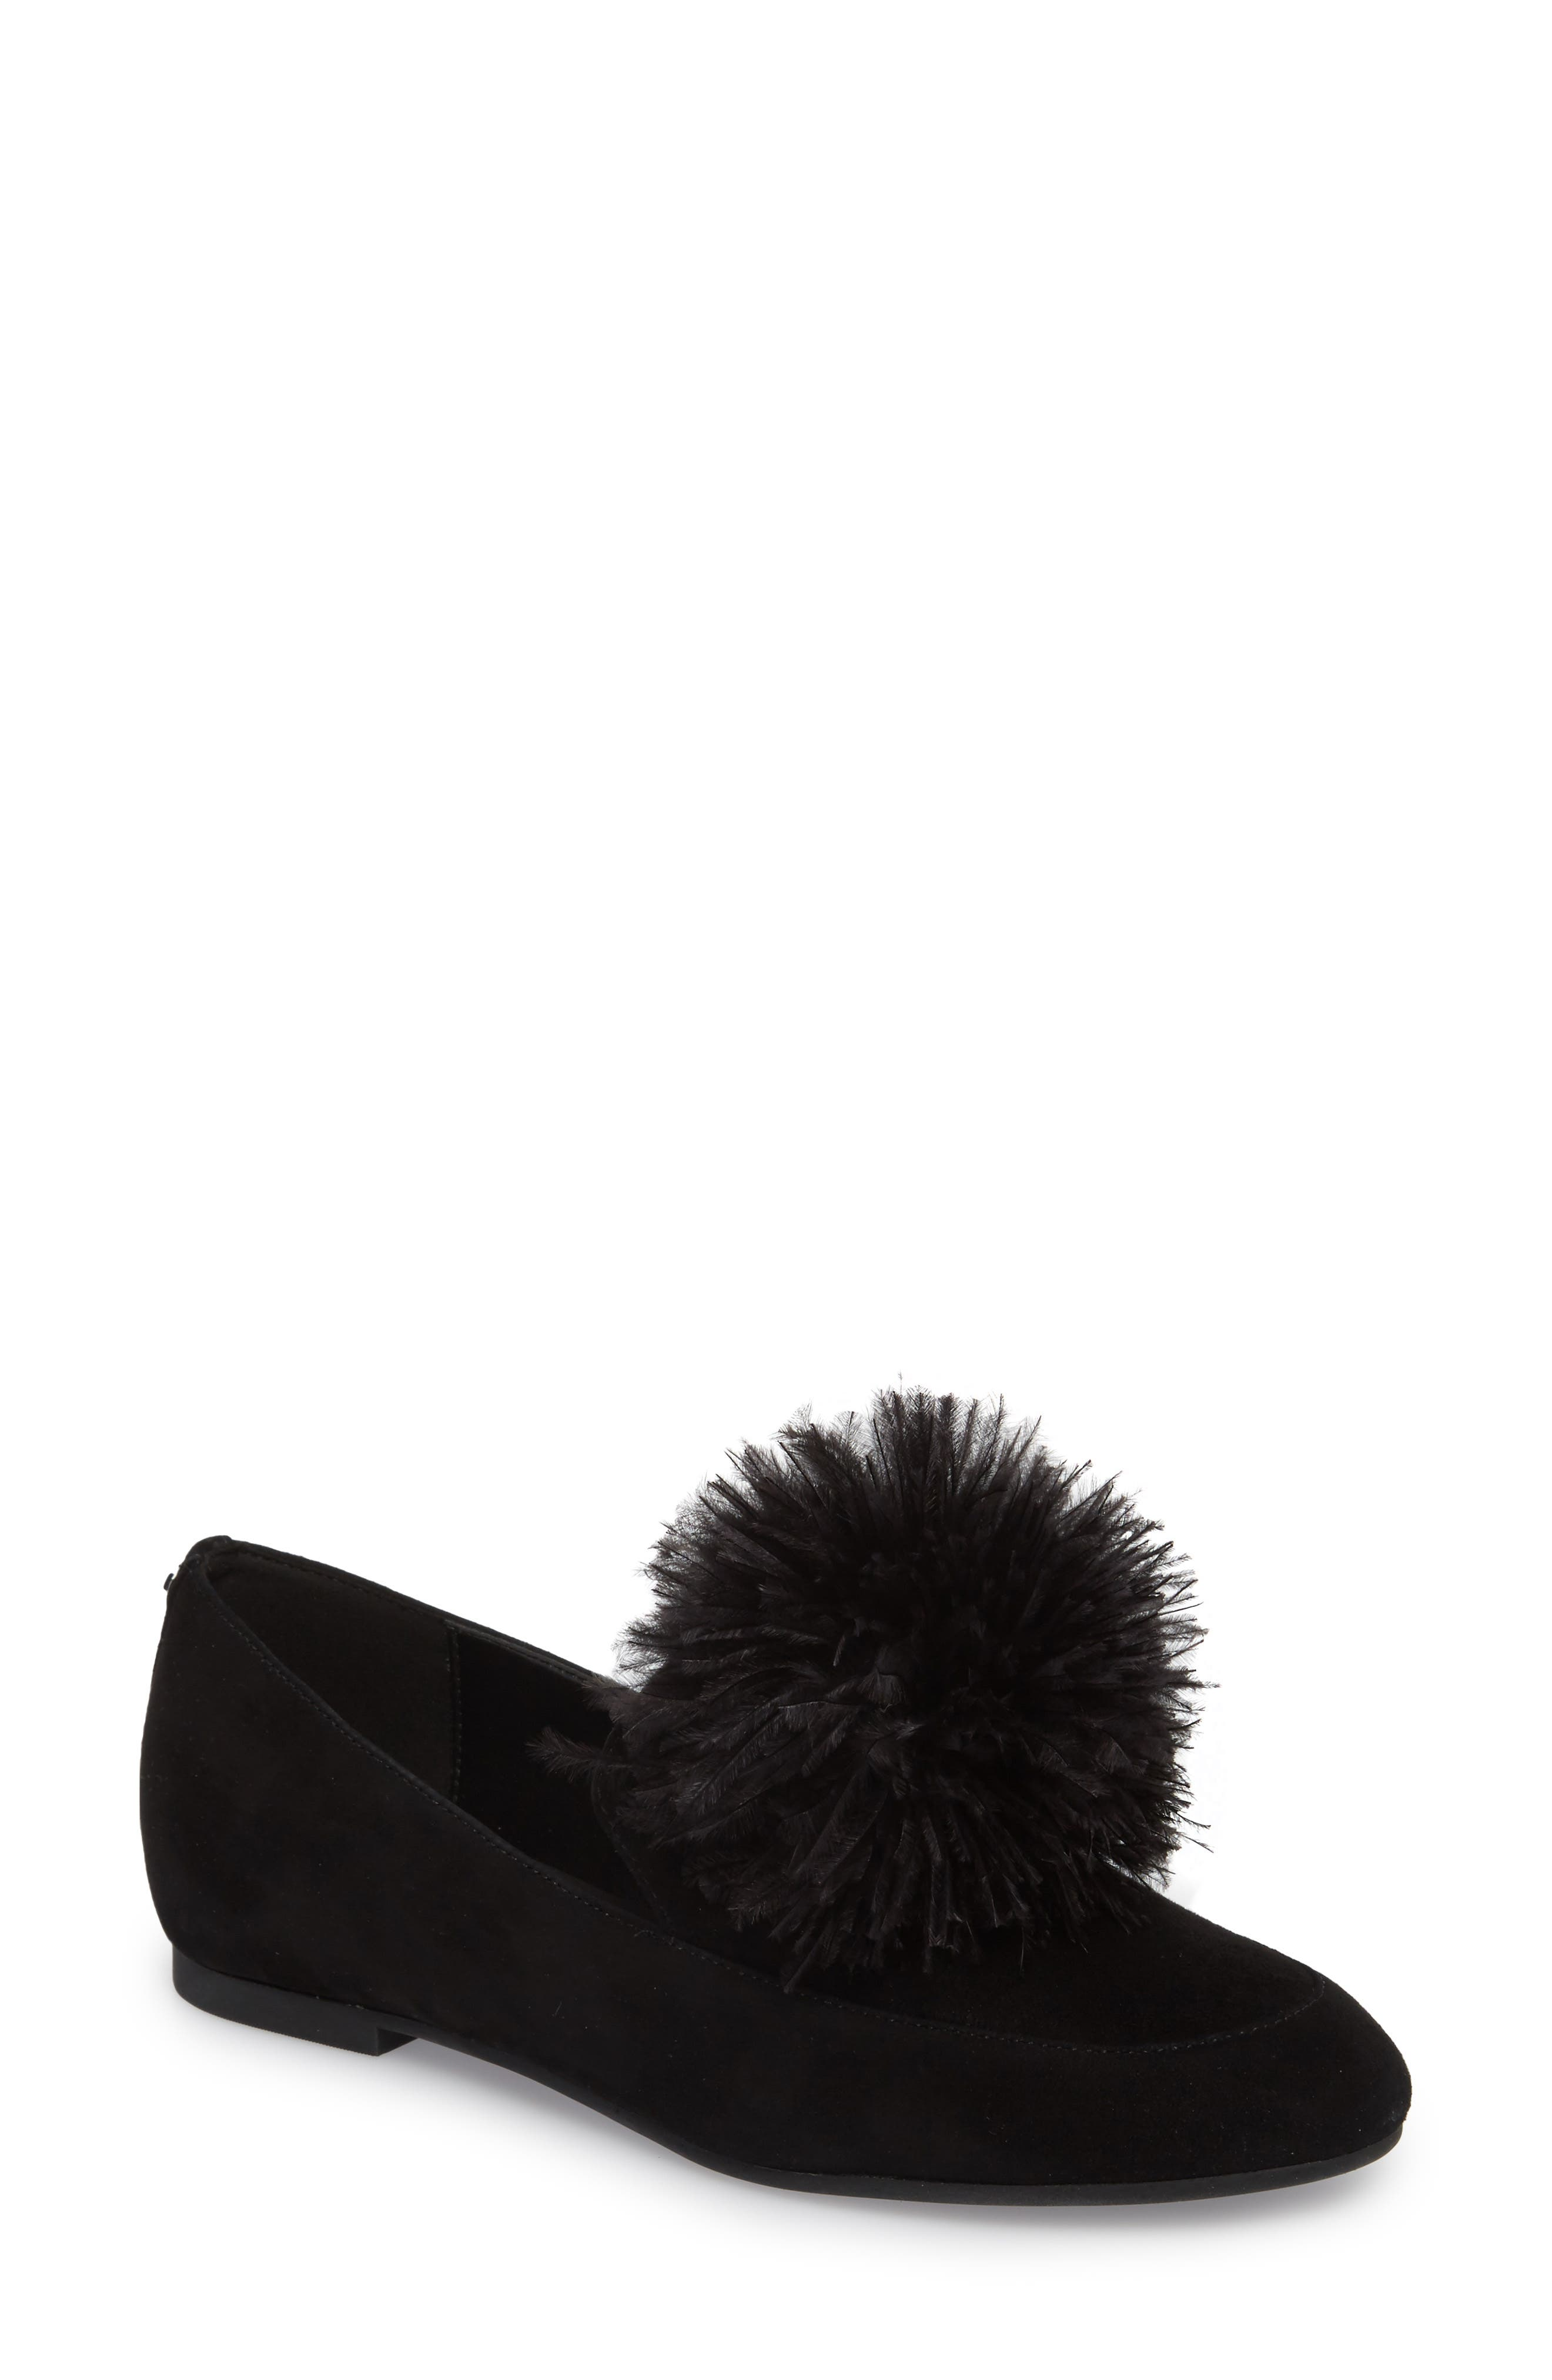 Fara Feather Pom Loafer,                             Main thumbnail 1, color,